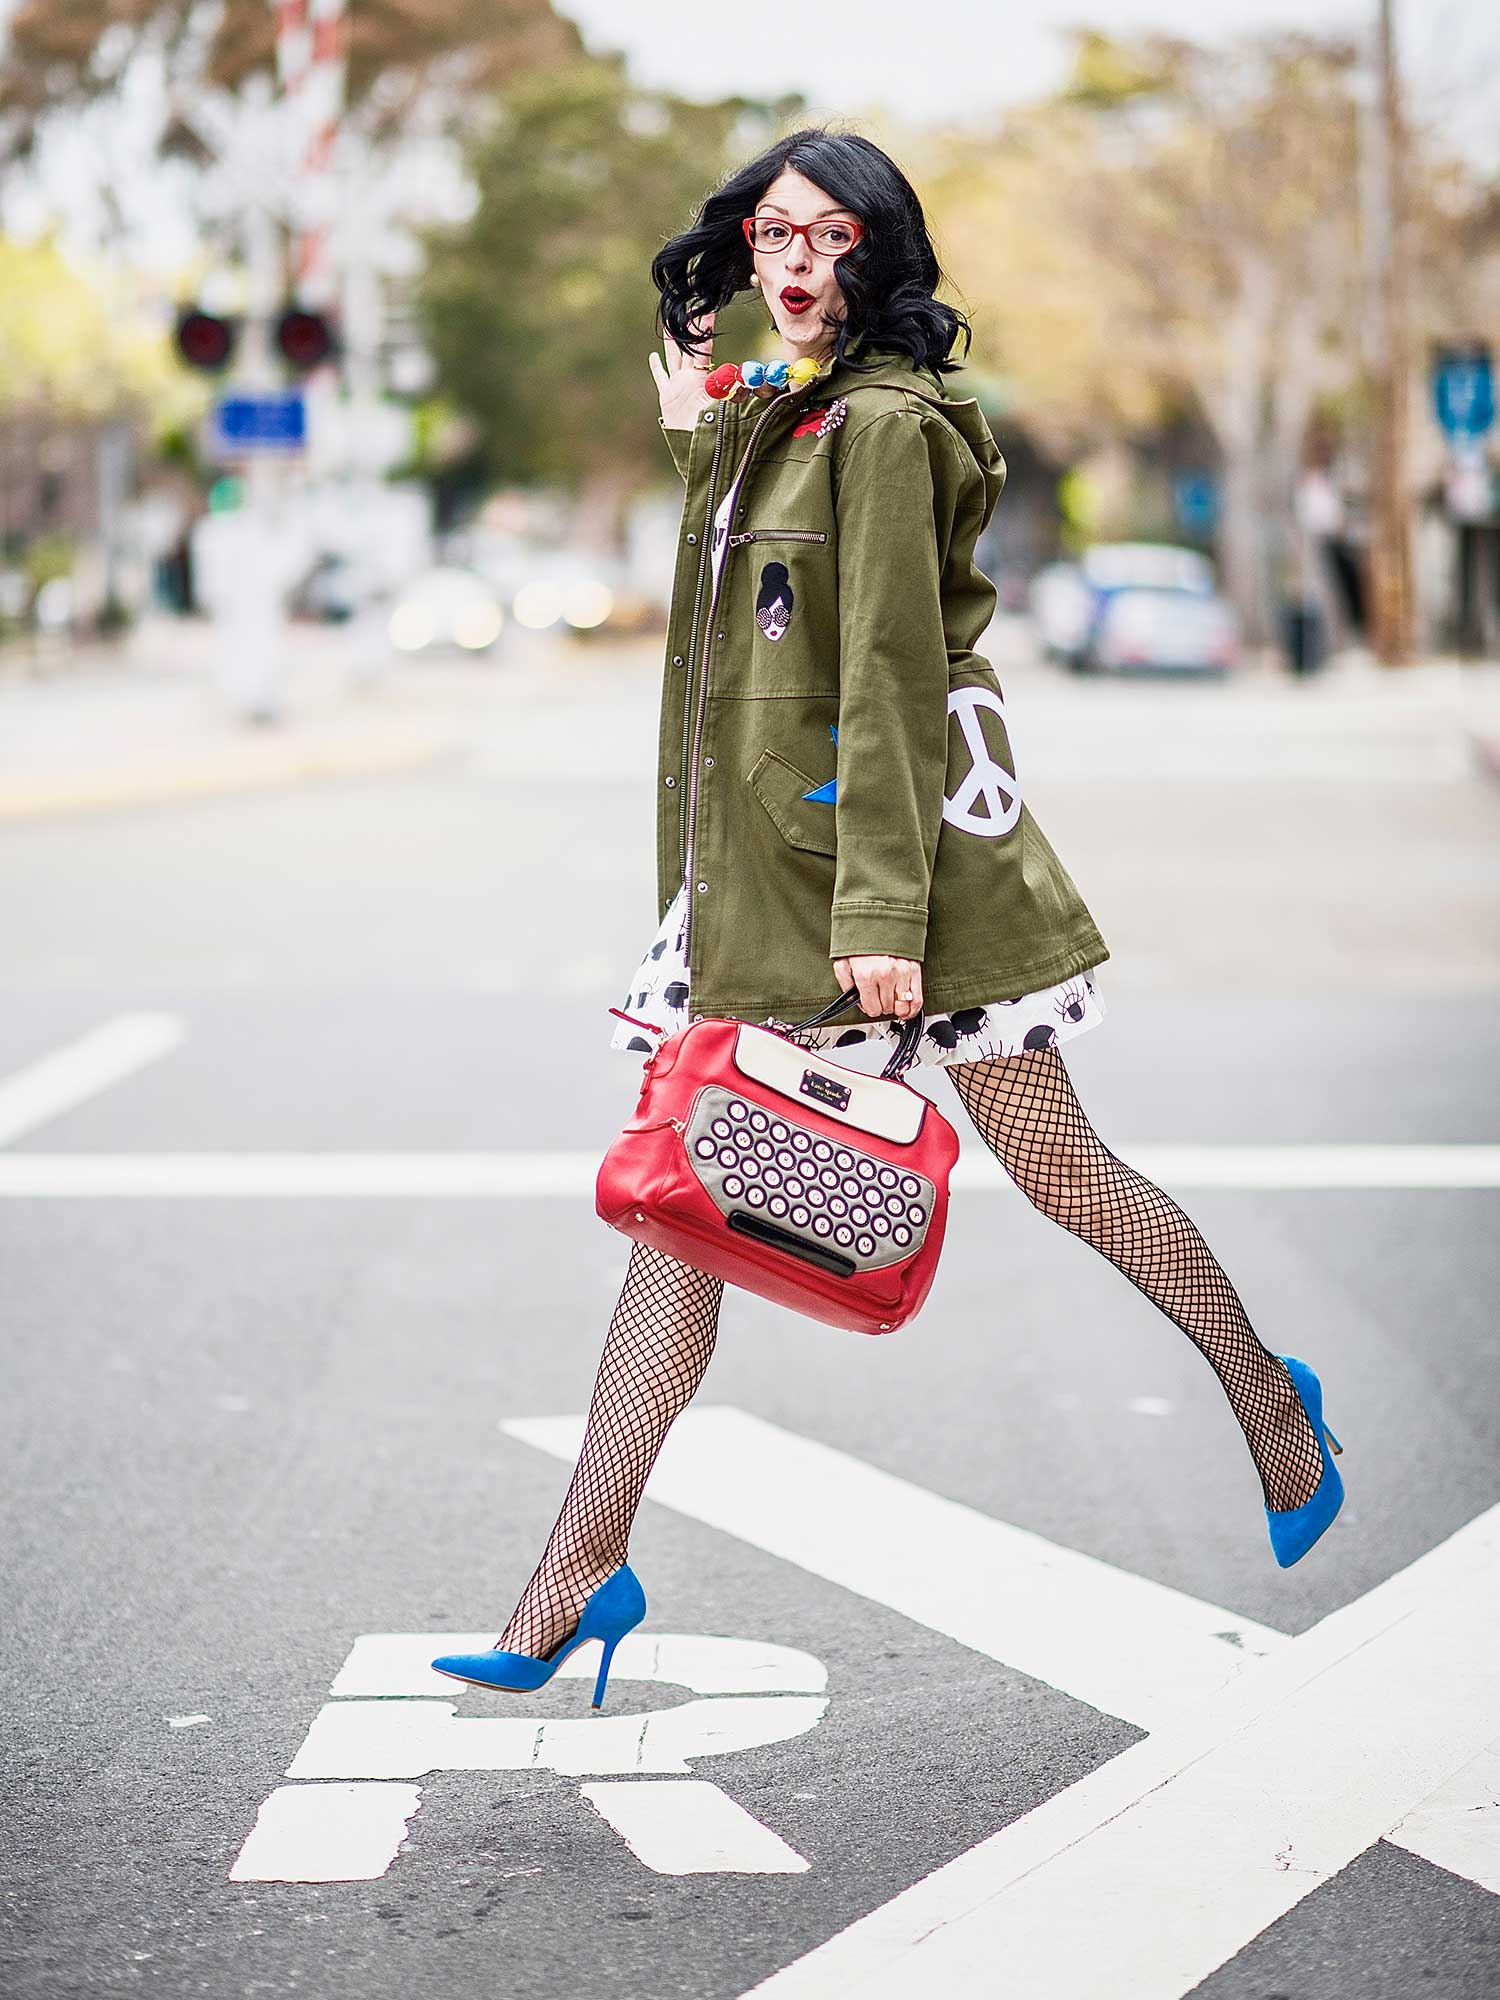 Jenna-Pilant-San-Diego-Style-Blogger-Lucky-Little-Mustardseed-How-To-Wear-A-Rain-Jacket-With-A-Dress-3